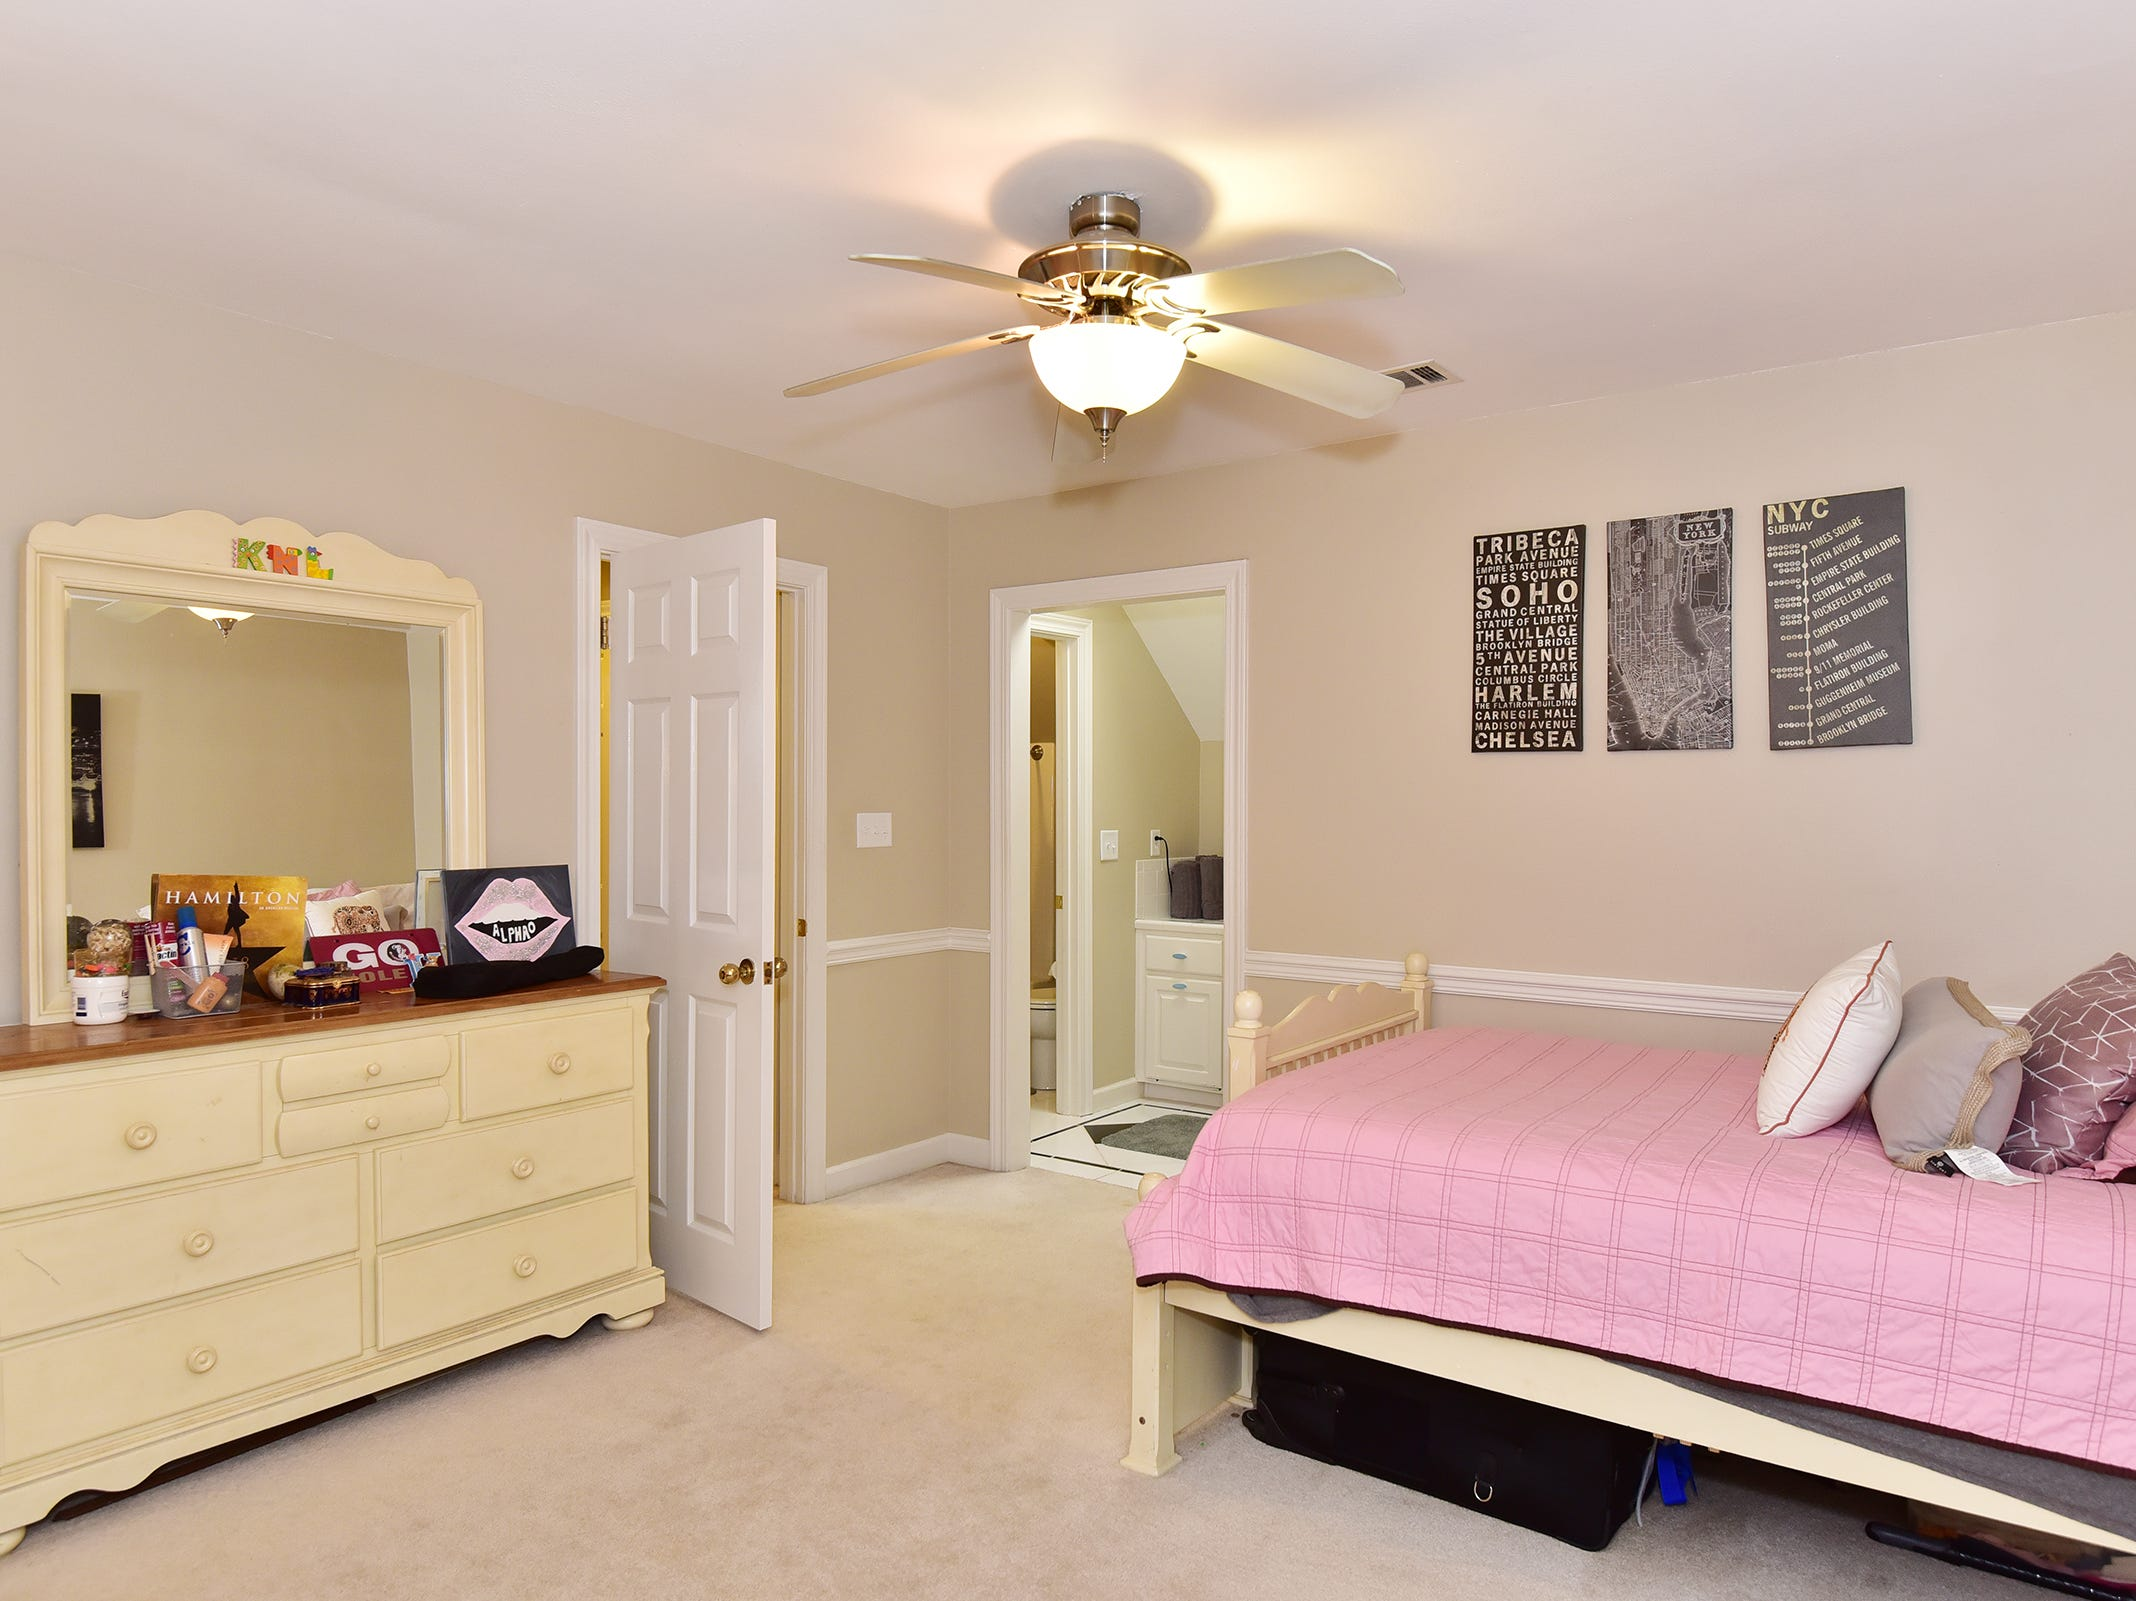 2474 Semur Rd., an additional bedroom.